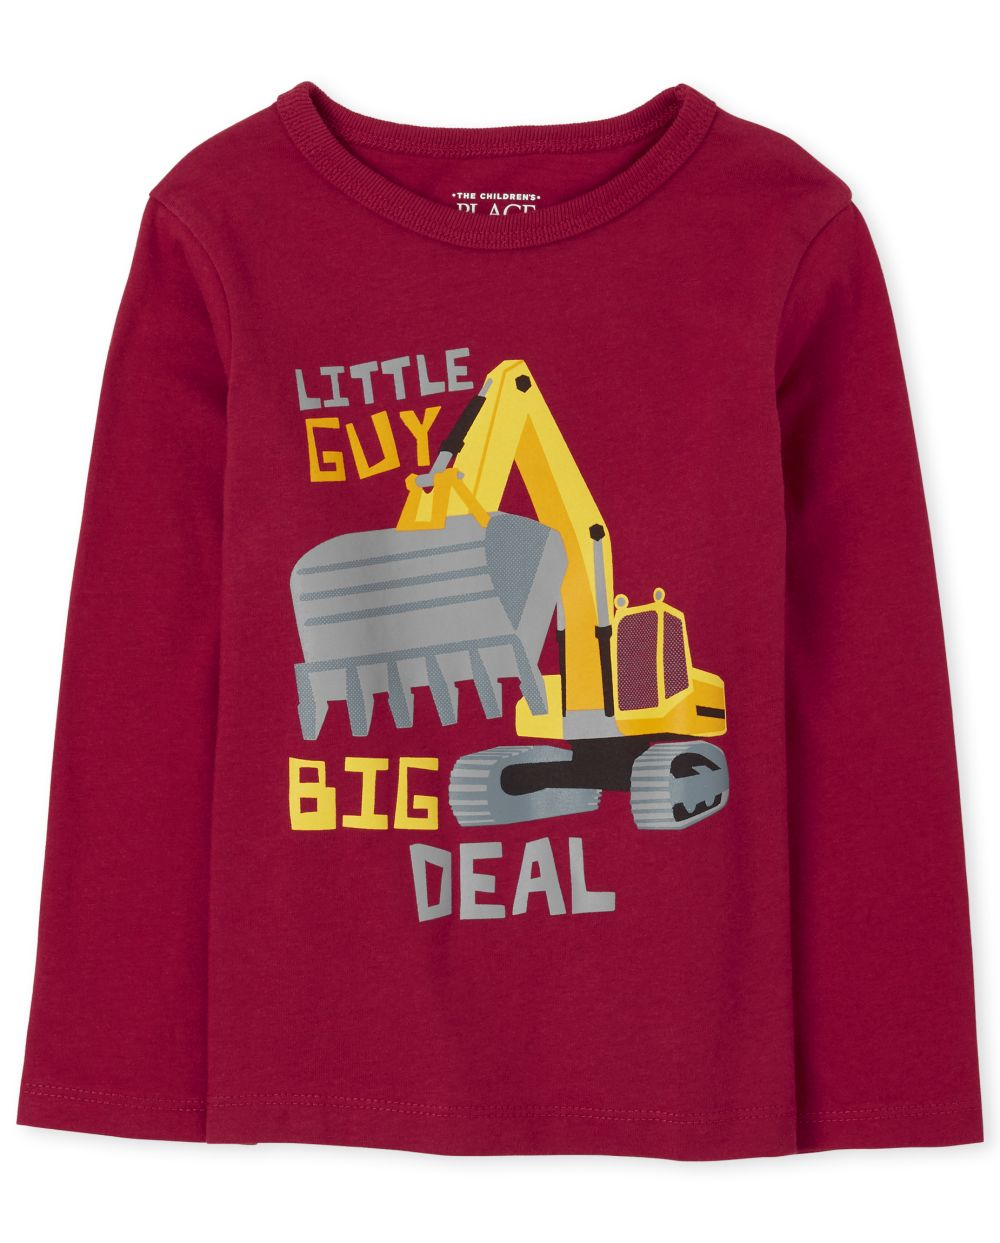 Baby And Toddler Boys Big Deal Graphic Tee